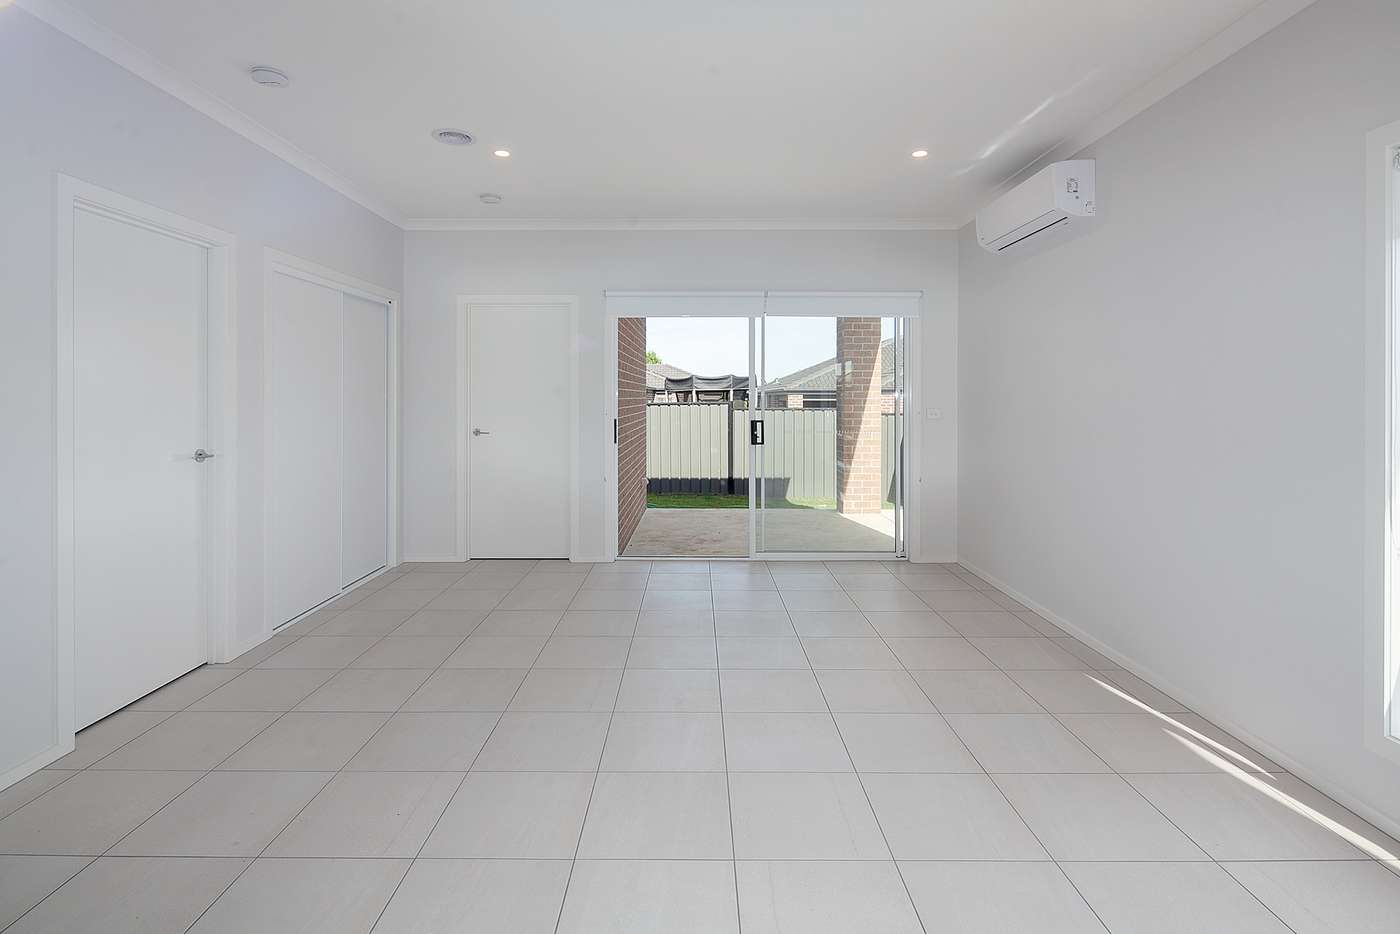 Seventh view of Homely house listing, 22 Salim Way, Clyde North VIC 3978